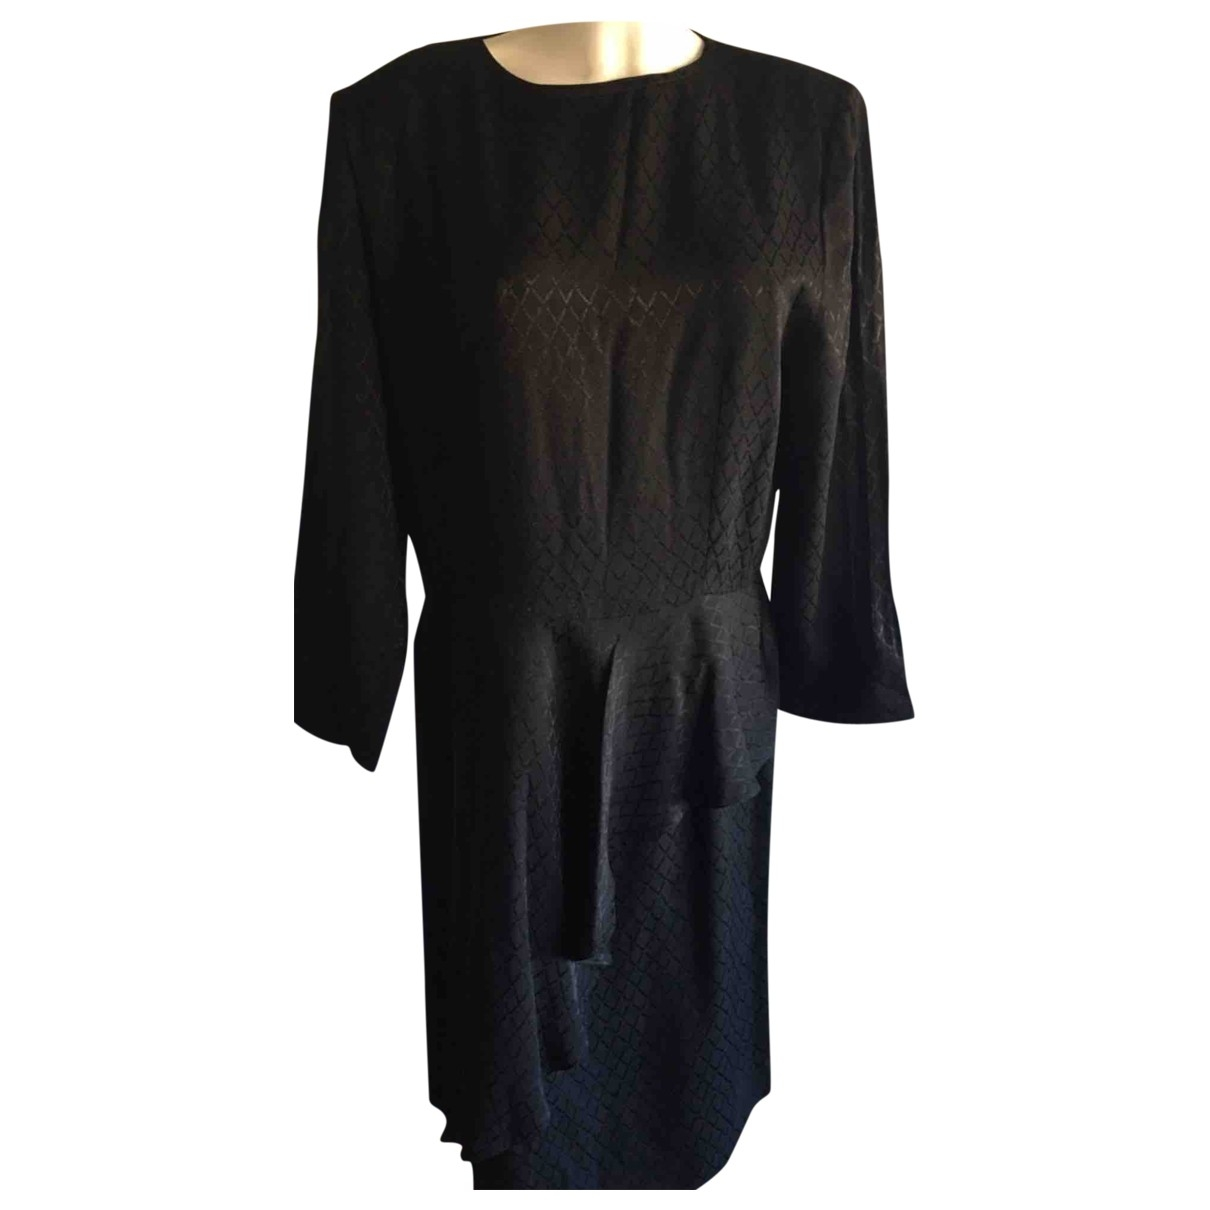 Guy Laroche \N Black dress for Women 40 FR